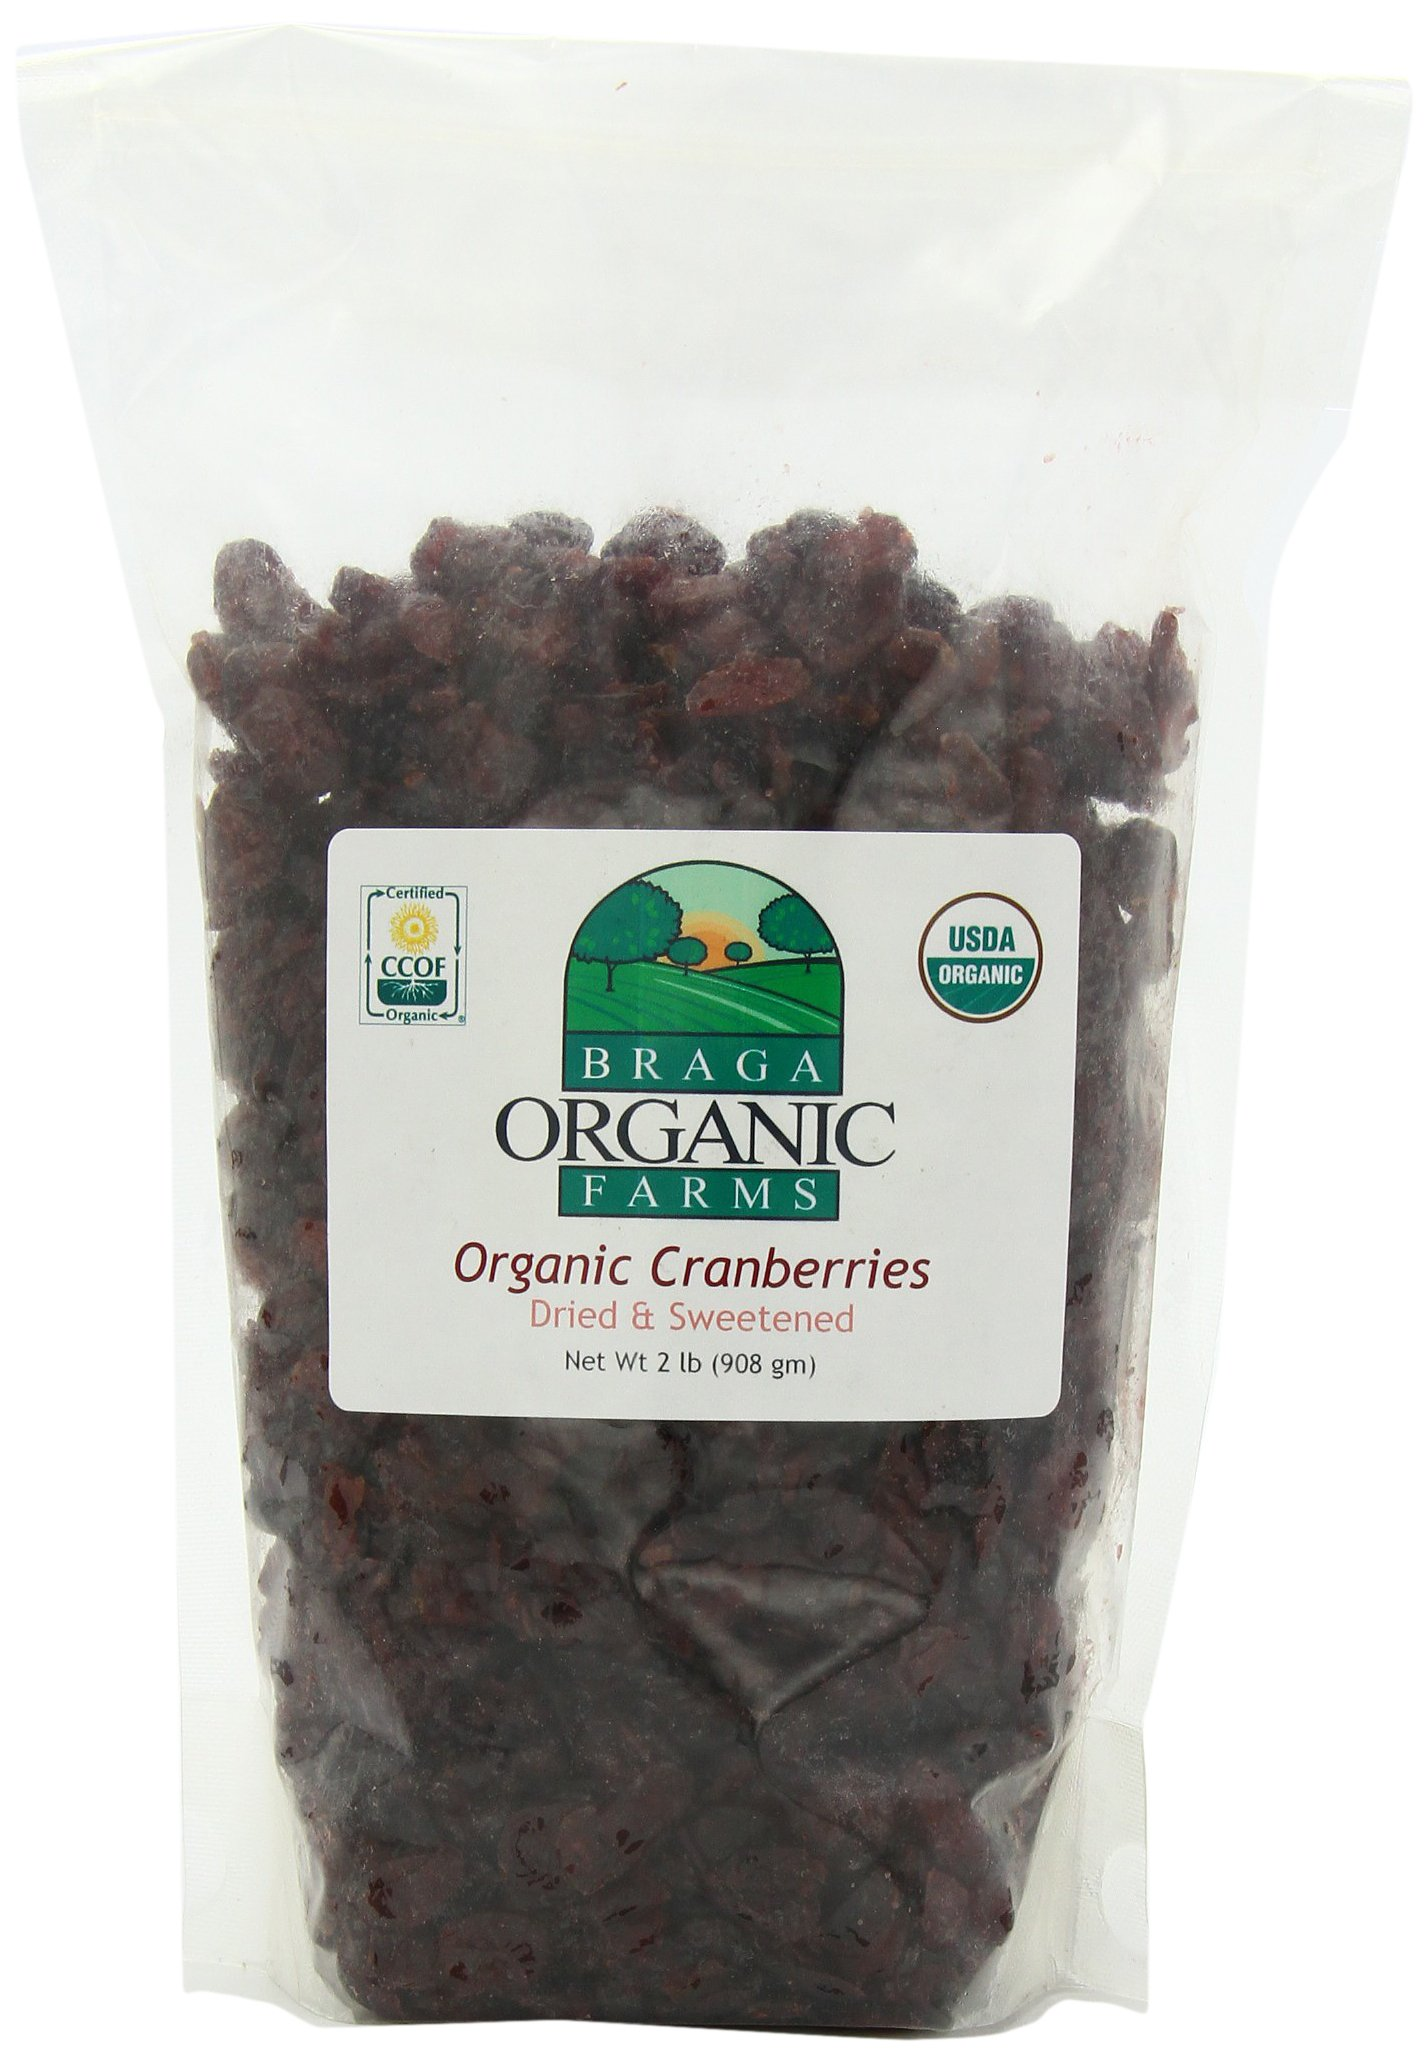 Braga Organic Farms Dried Cranberries, 2 Pound